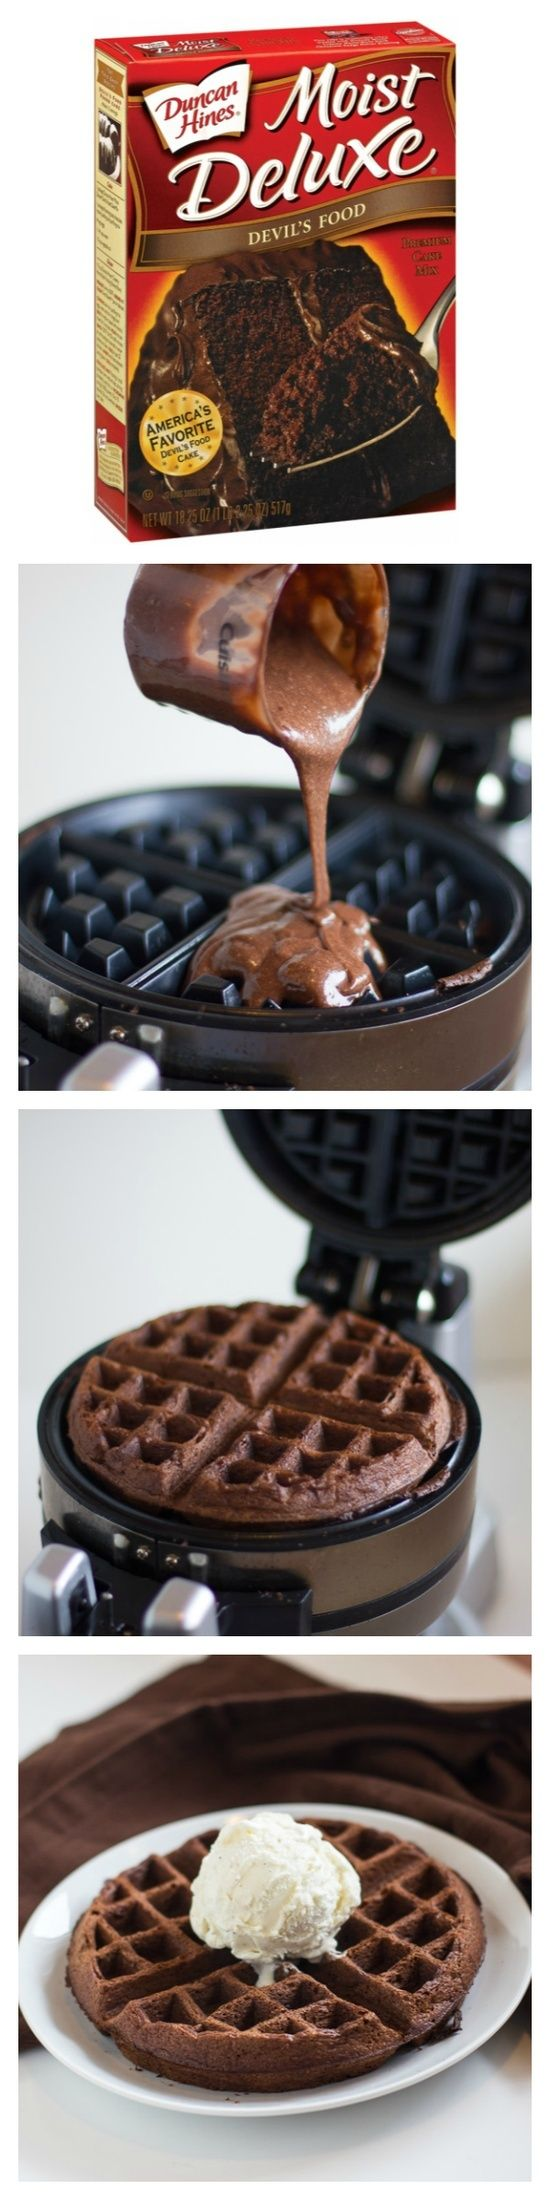 Cake Mix Waffles - make the cake batter as instructed on the box then make them just like you do waffles. Top with your favorite ice cream!. Great for a birthday morning breakfast! - foodandsome